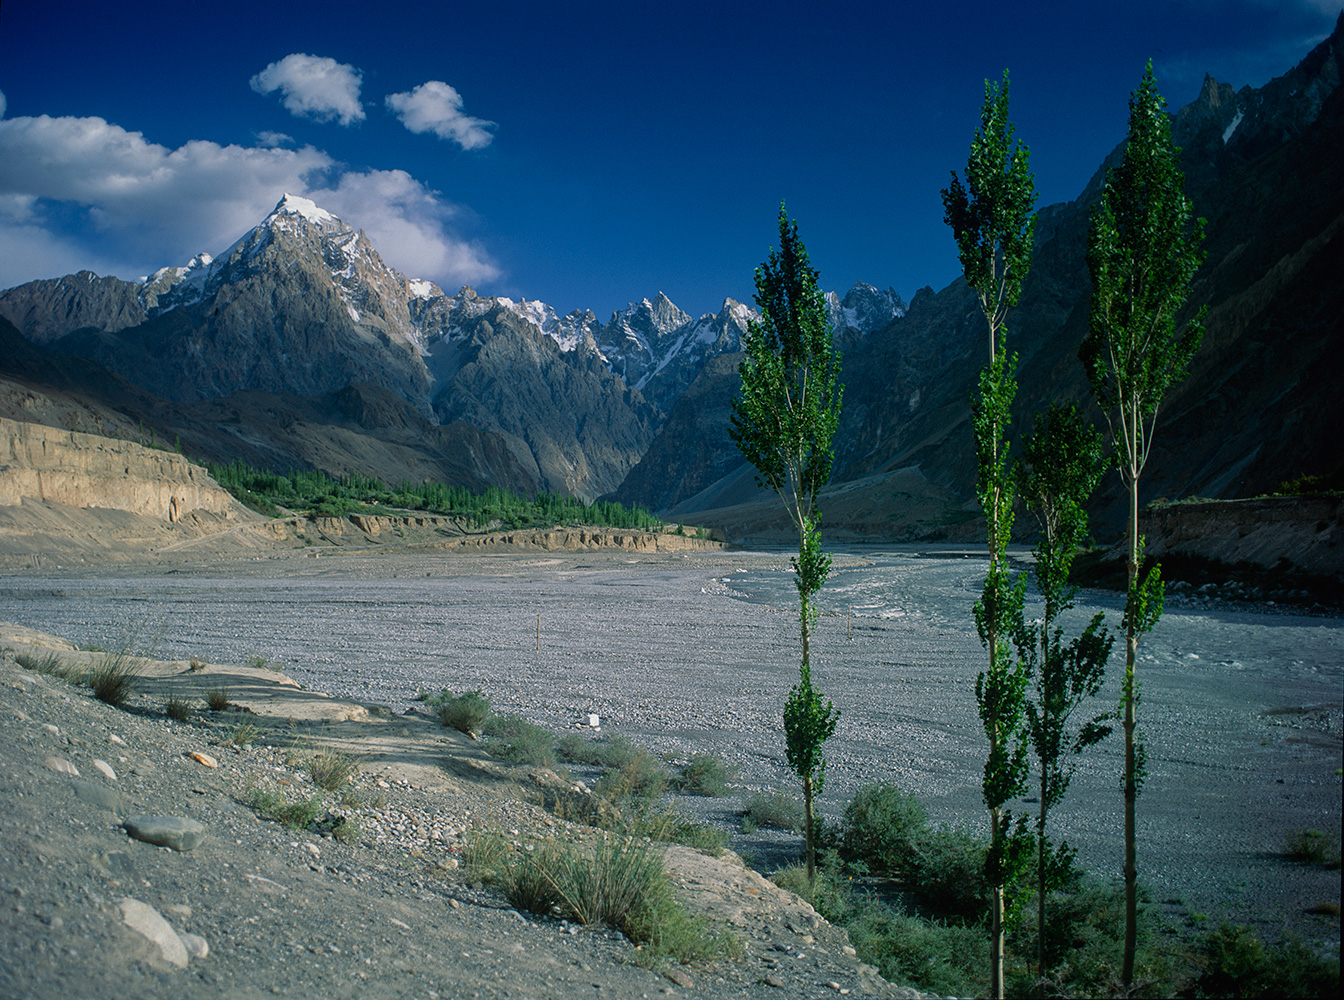 The Hunza Valley at Sost